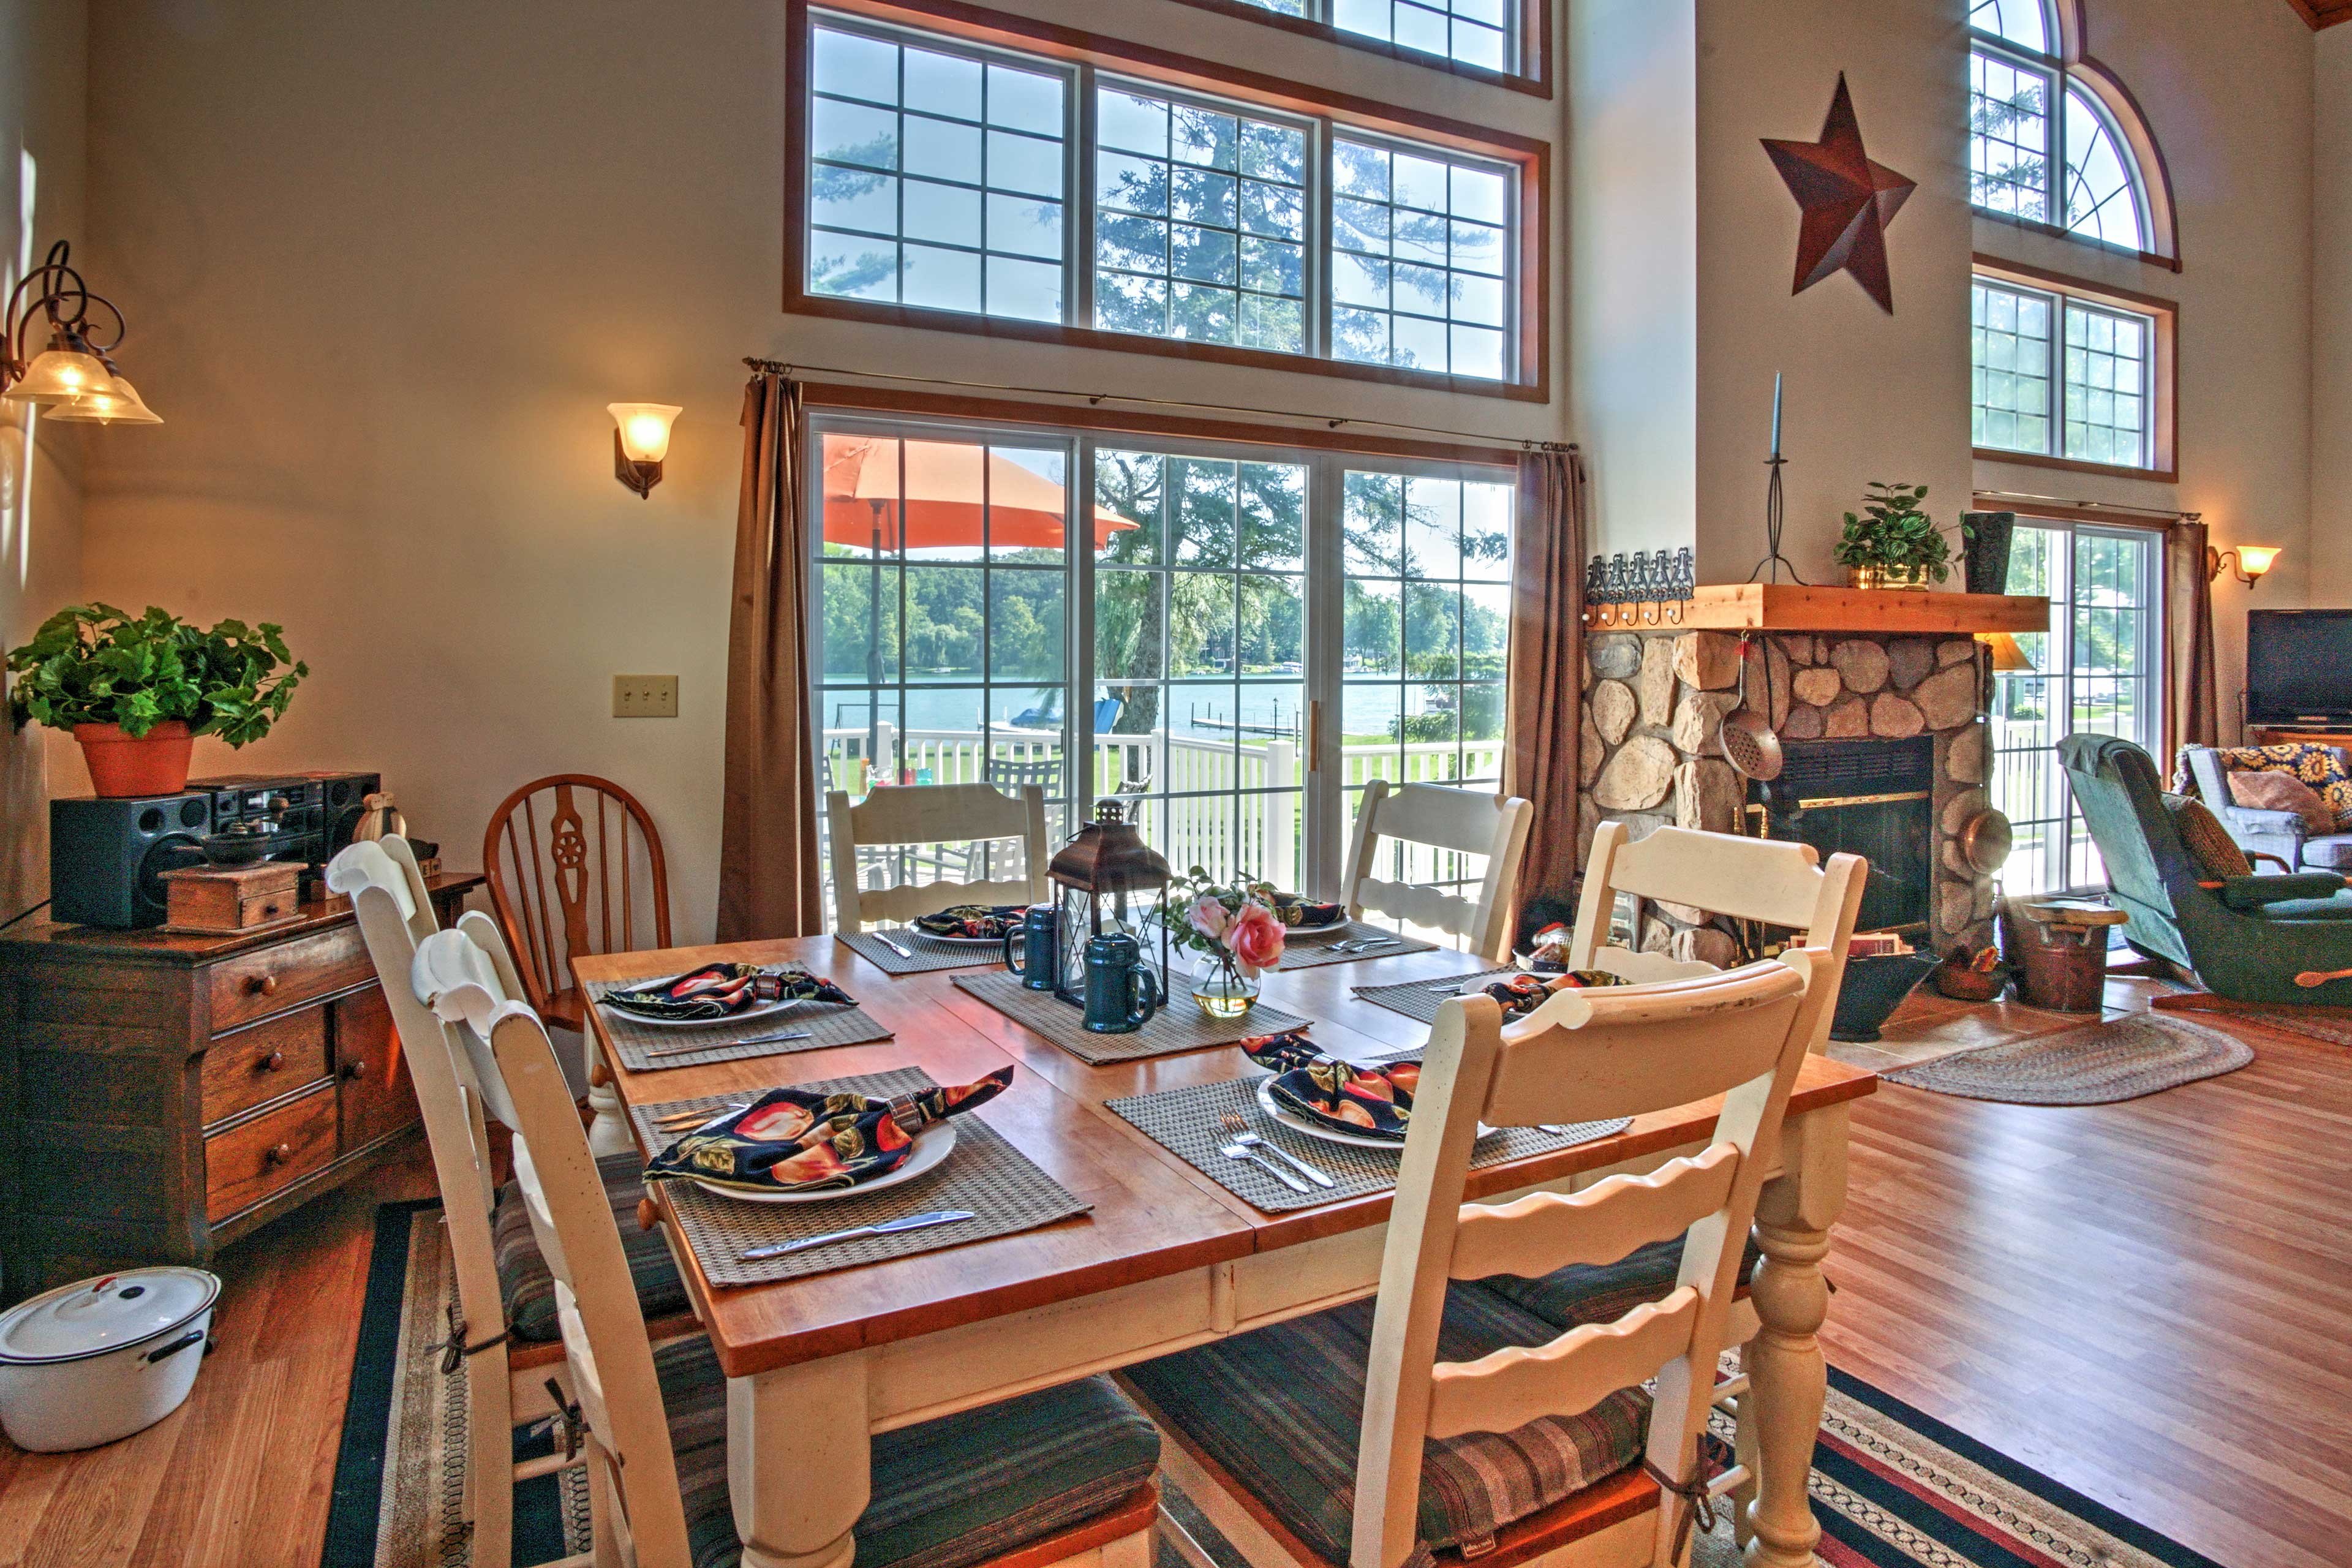 Dine on a gourmet meal at the wood table with seating for 6.